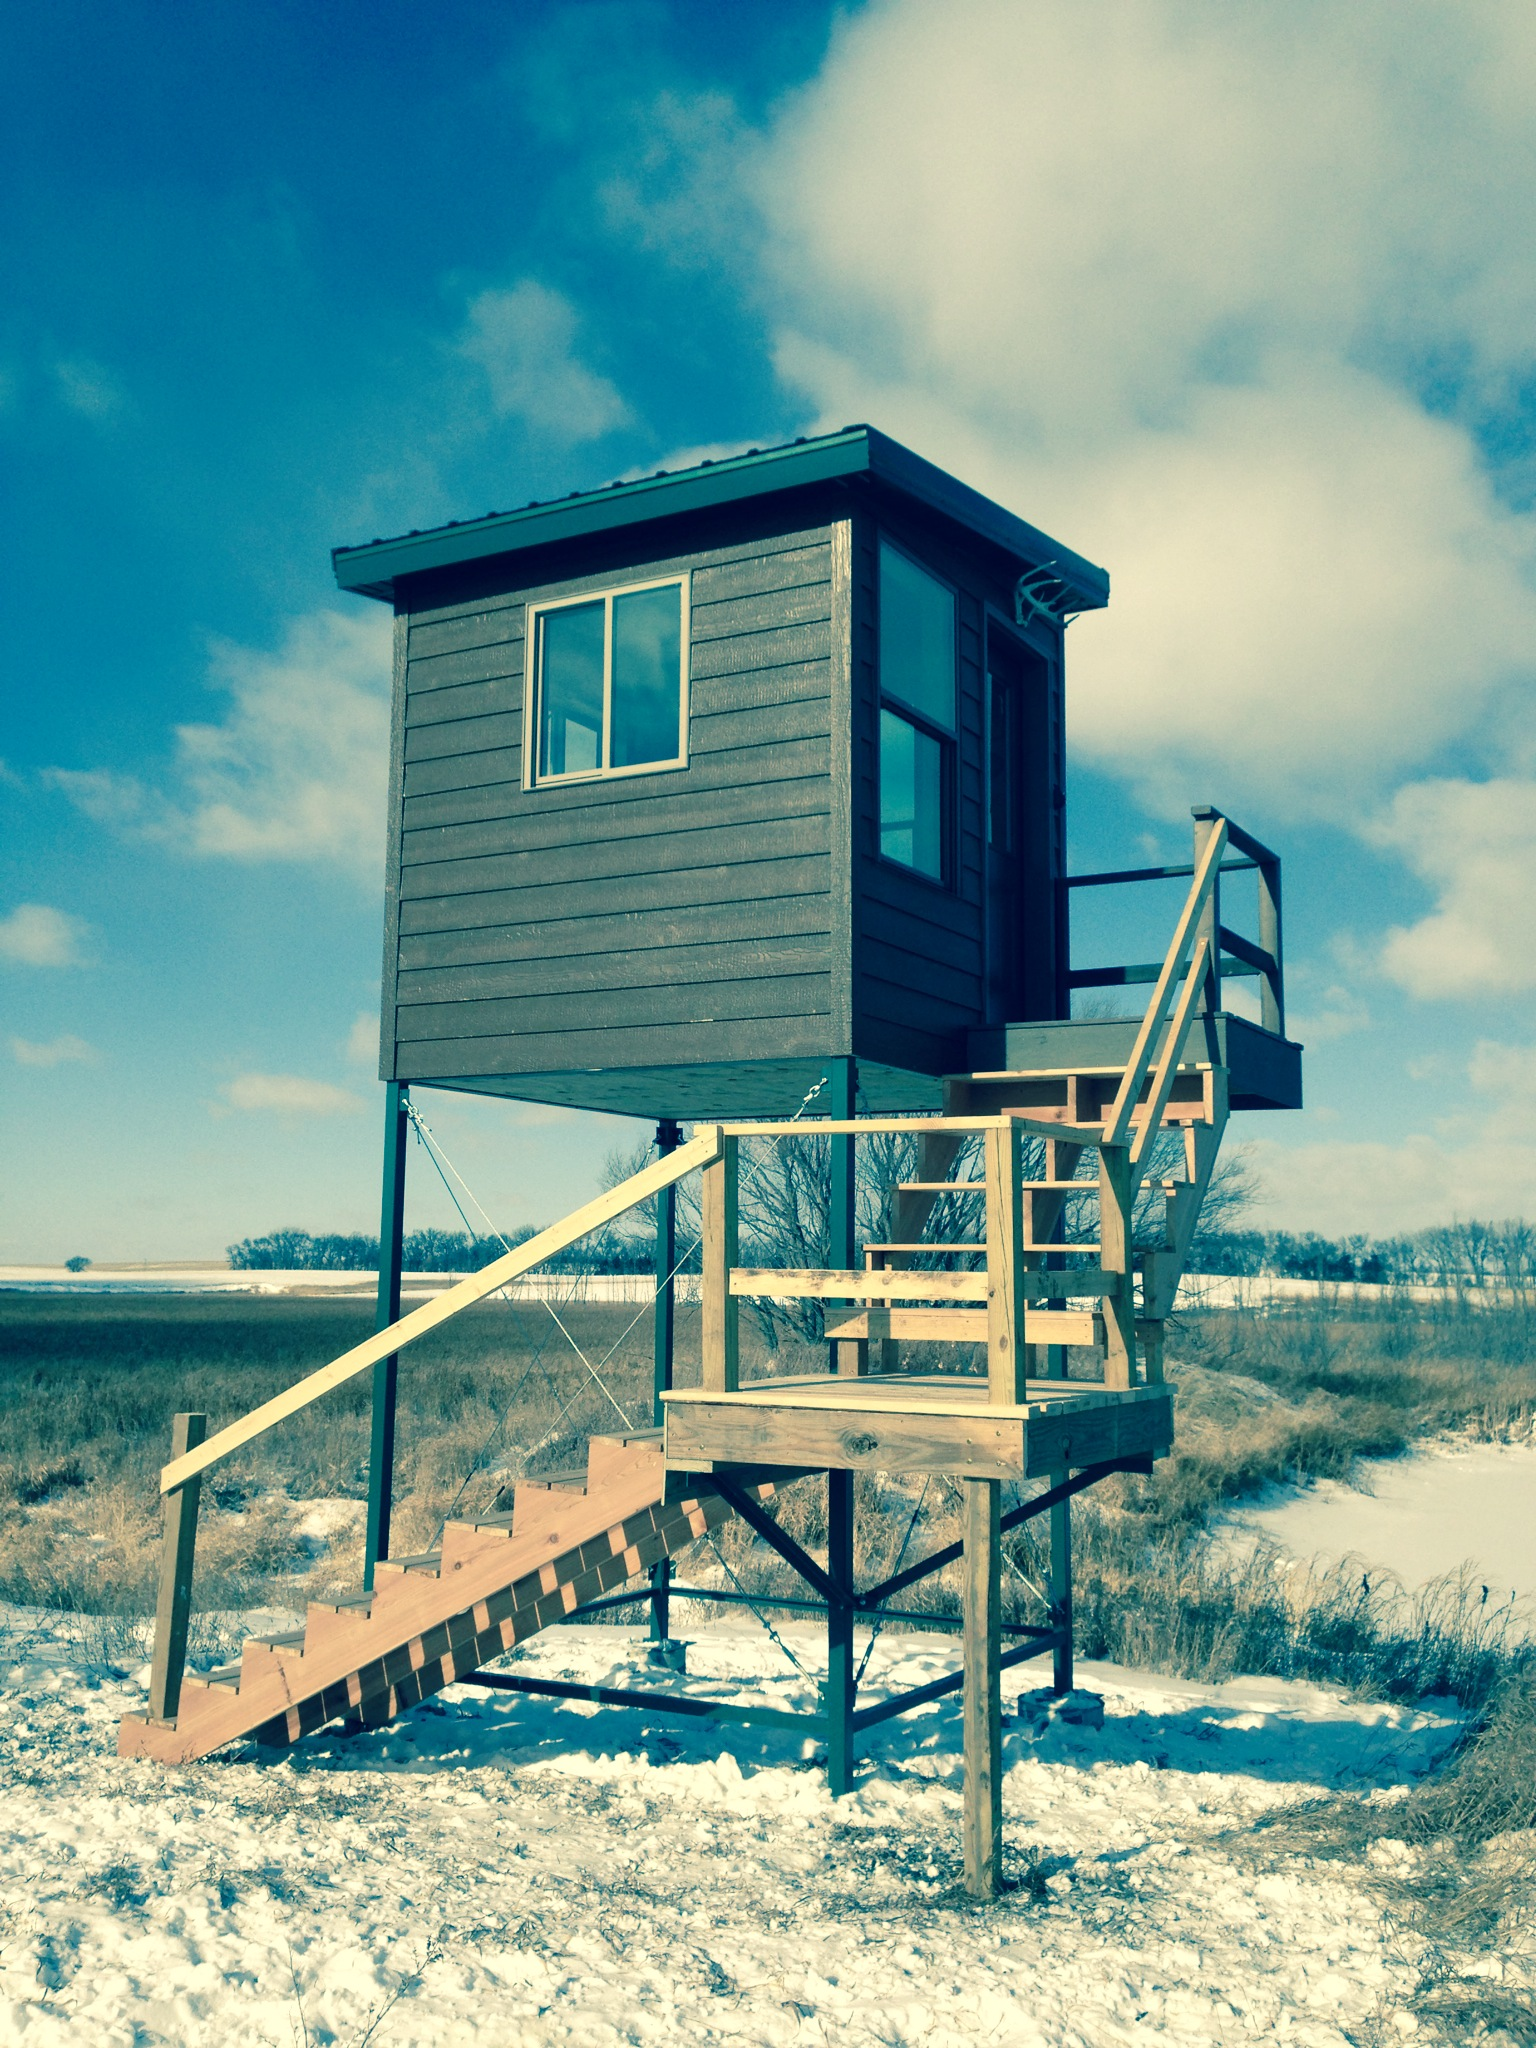 DEER STAND: Constructed with SIPS (super insulated panel system) walls, floor and roof. Hunt or photograph wildlife in comfort.